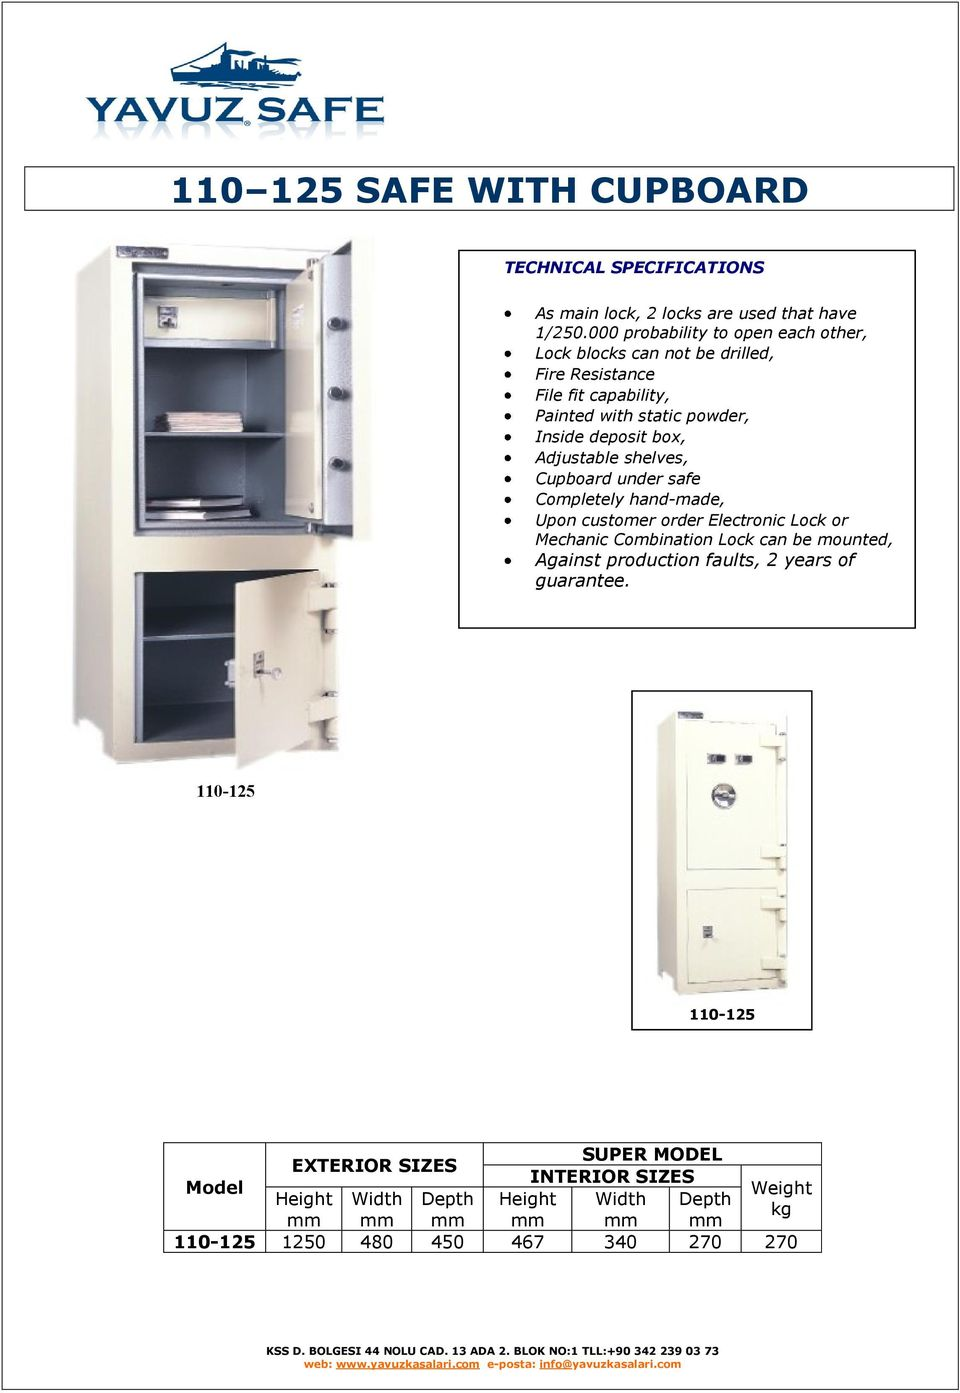 box, Adjustable shelves, Cupboard under safe Completely hand-made, Upon customer order Electronic Lock or Mechanic Combination Lock can be mounted,